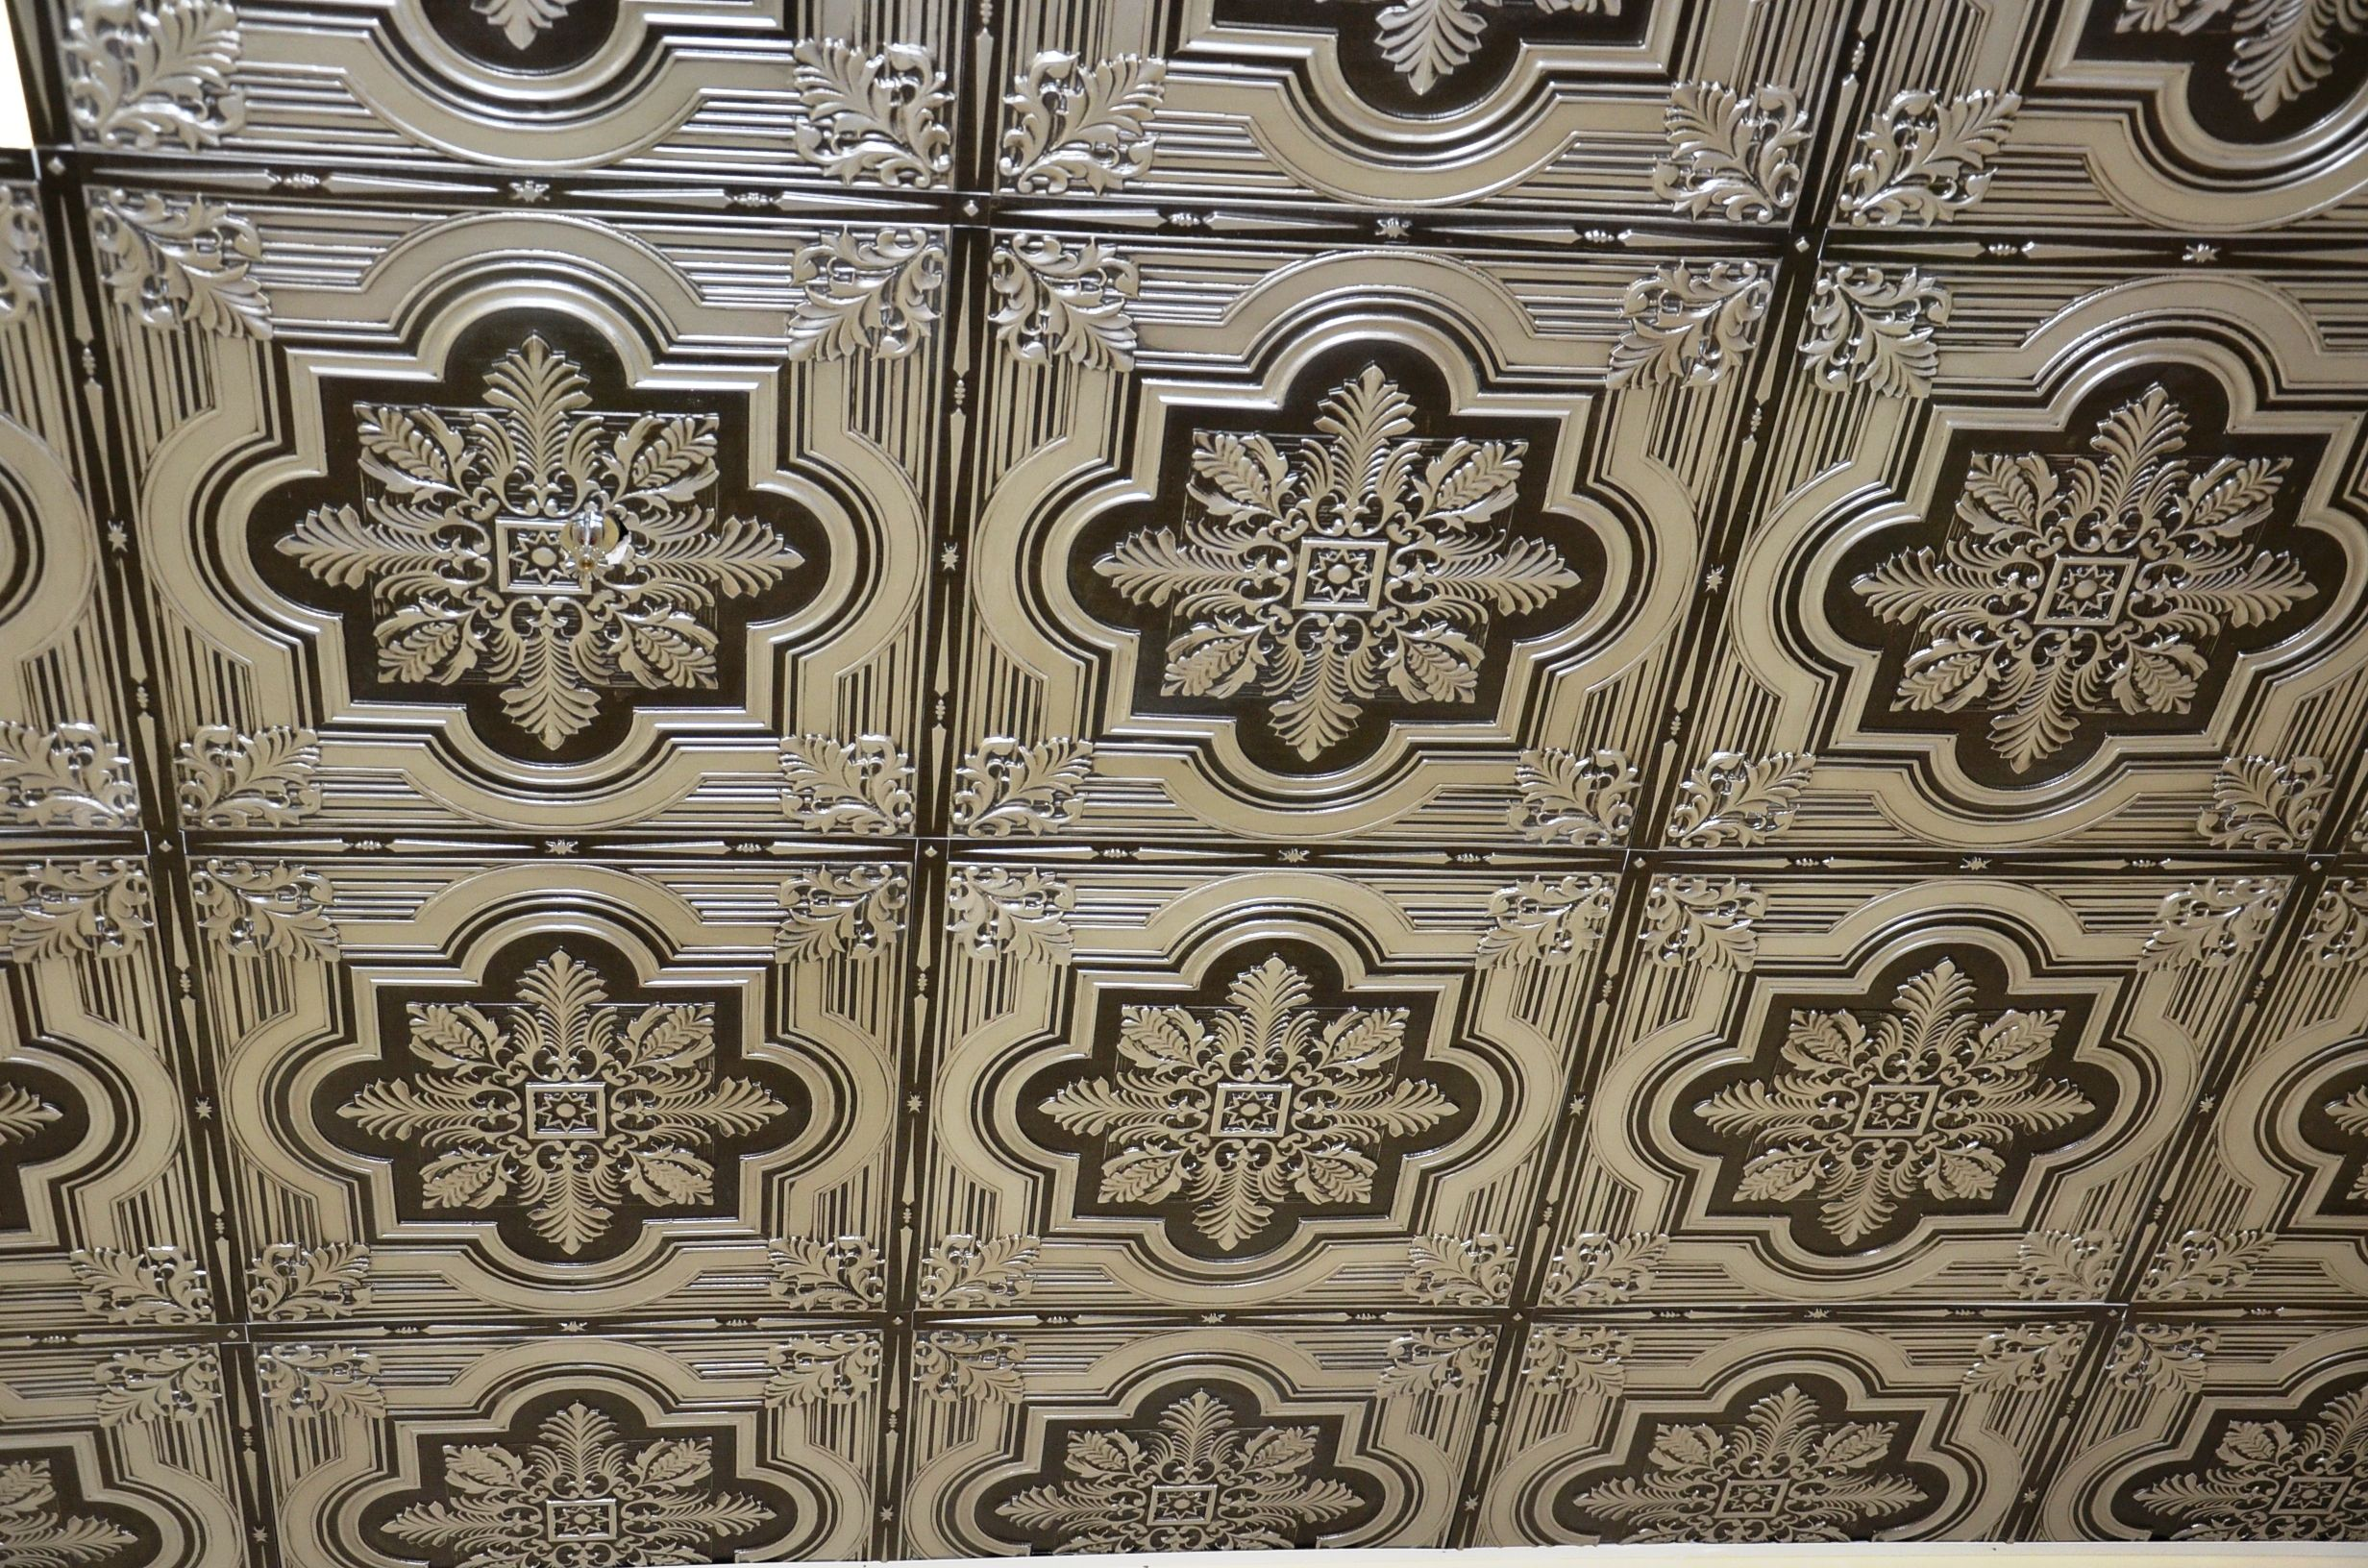 tiles uk nz manufacturers how decorative size south ceiling of tin to ceilings white on tile full africa faux glue suspended install